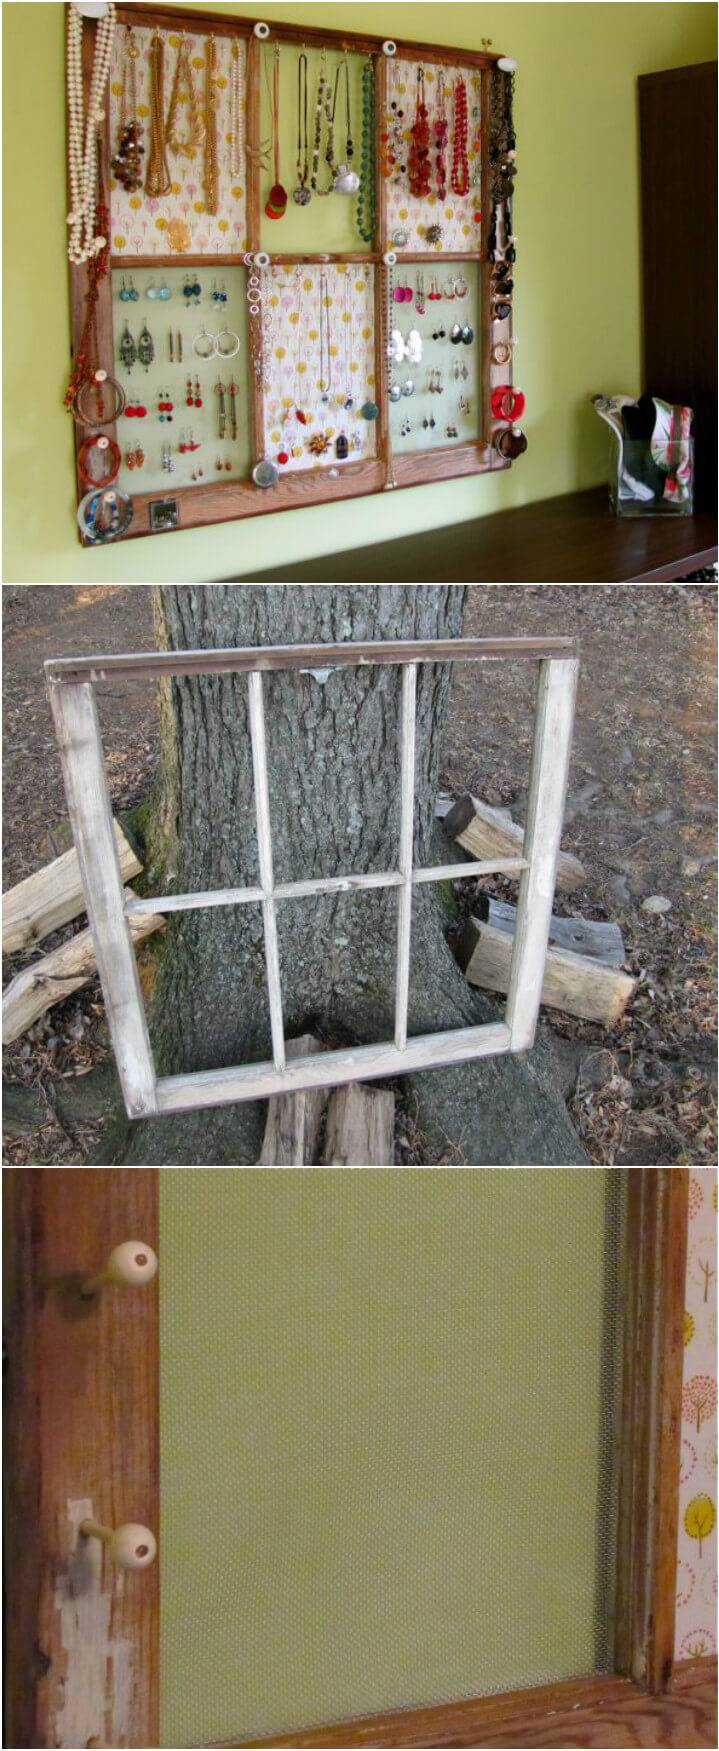 upcycled window into jewelry organizer